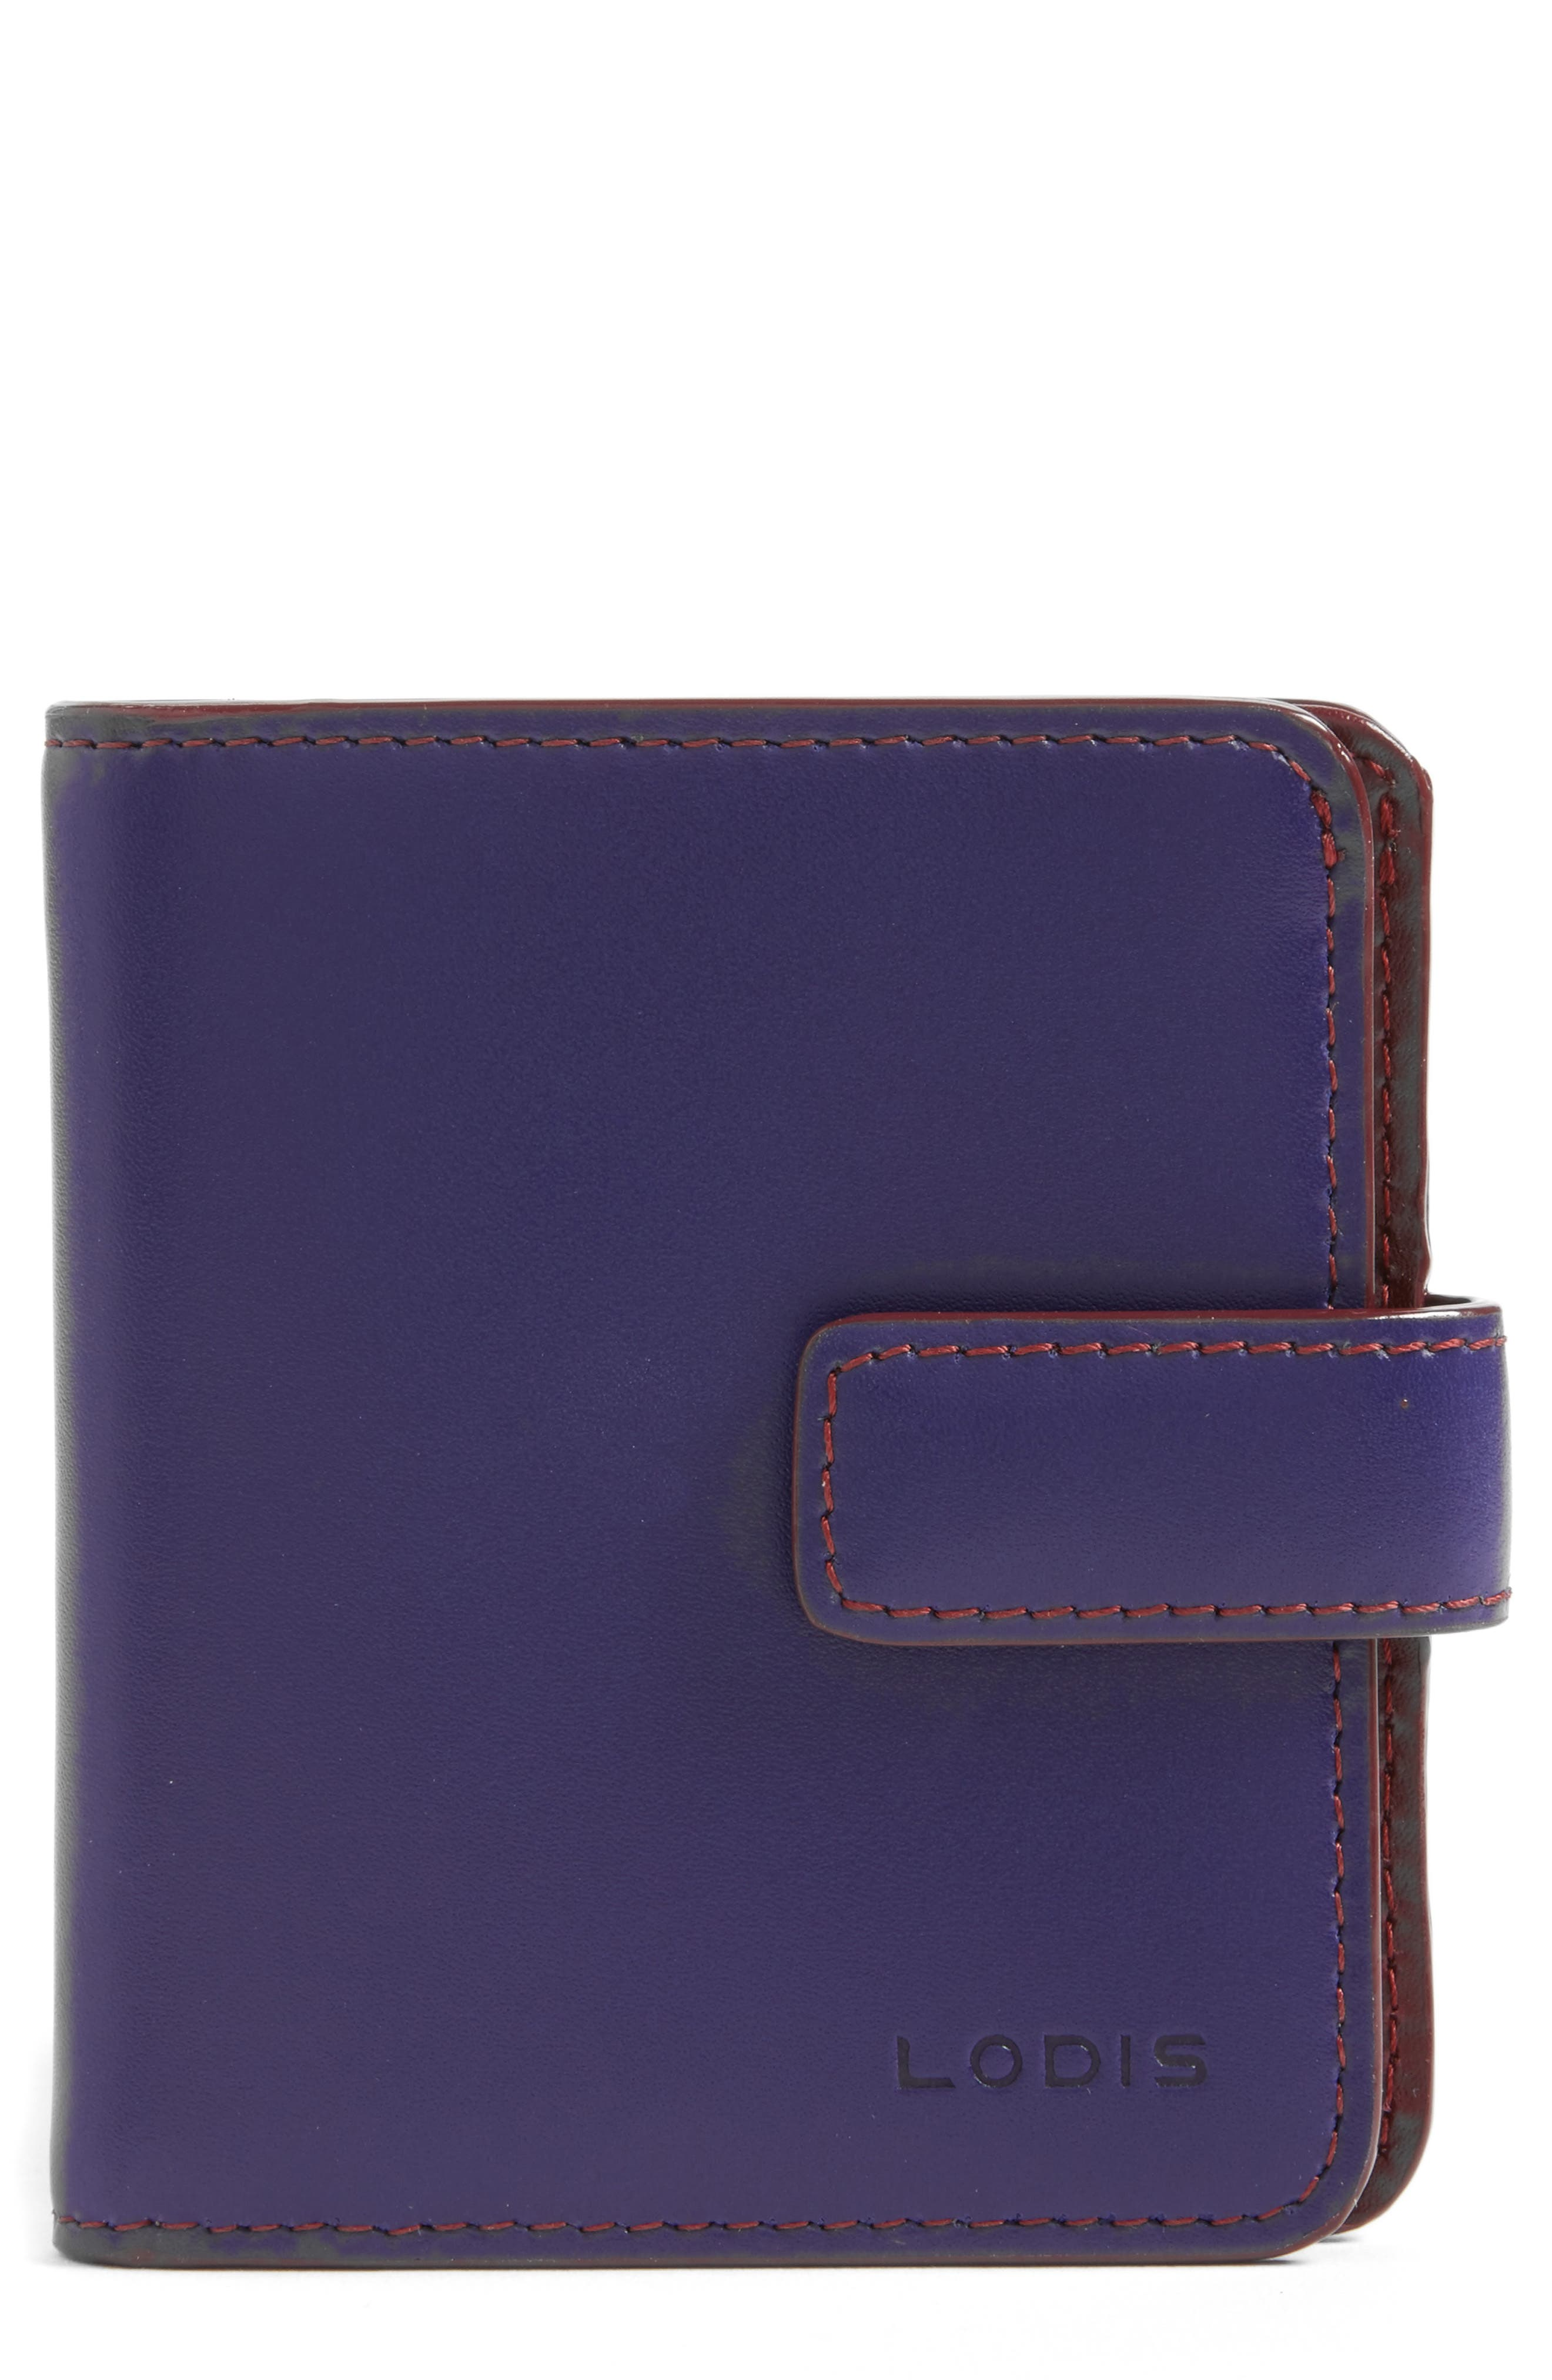 Lodis Petite Audrey RFID Leather Wallet,                             Main thumbnail 1, color,                             Midnight/ Chianti